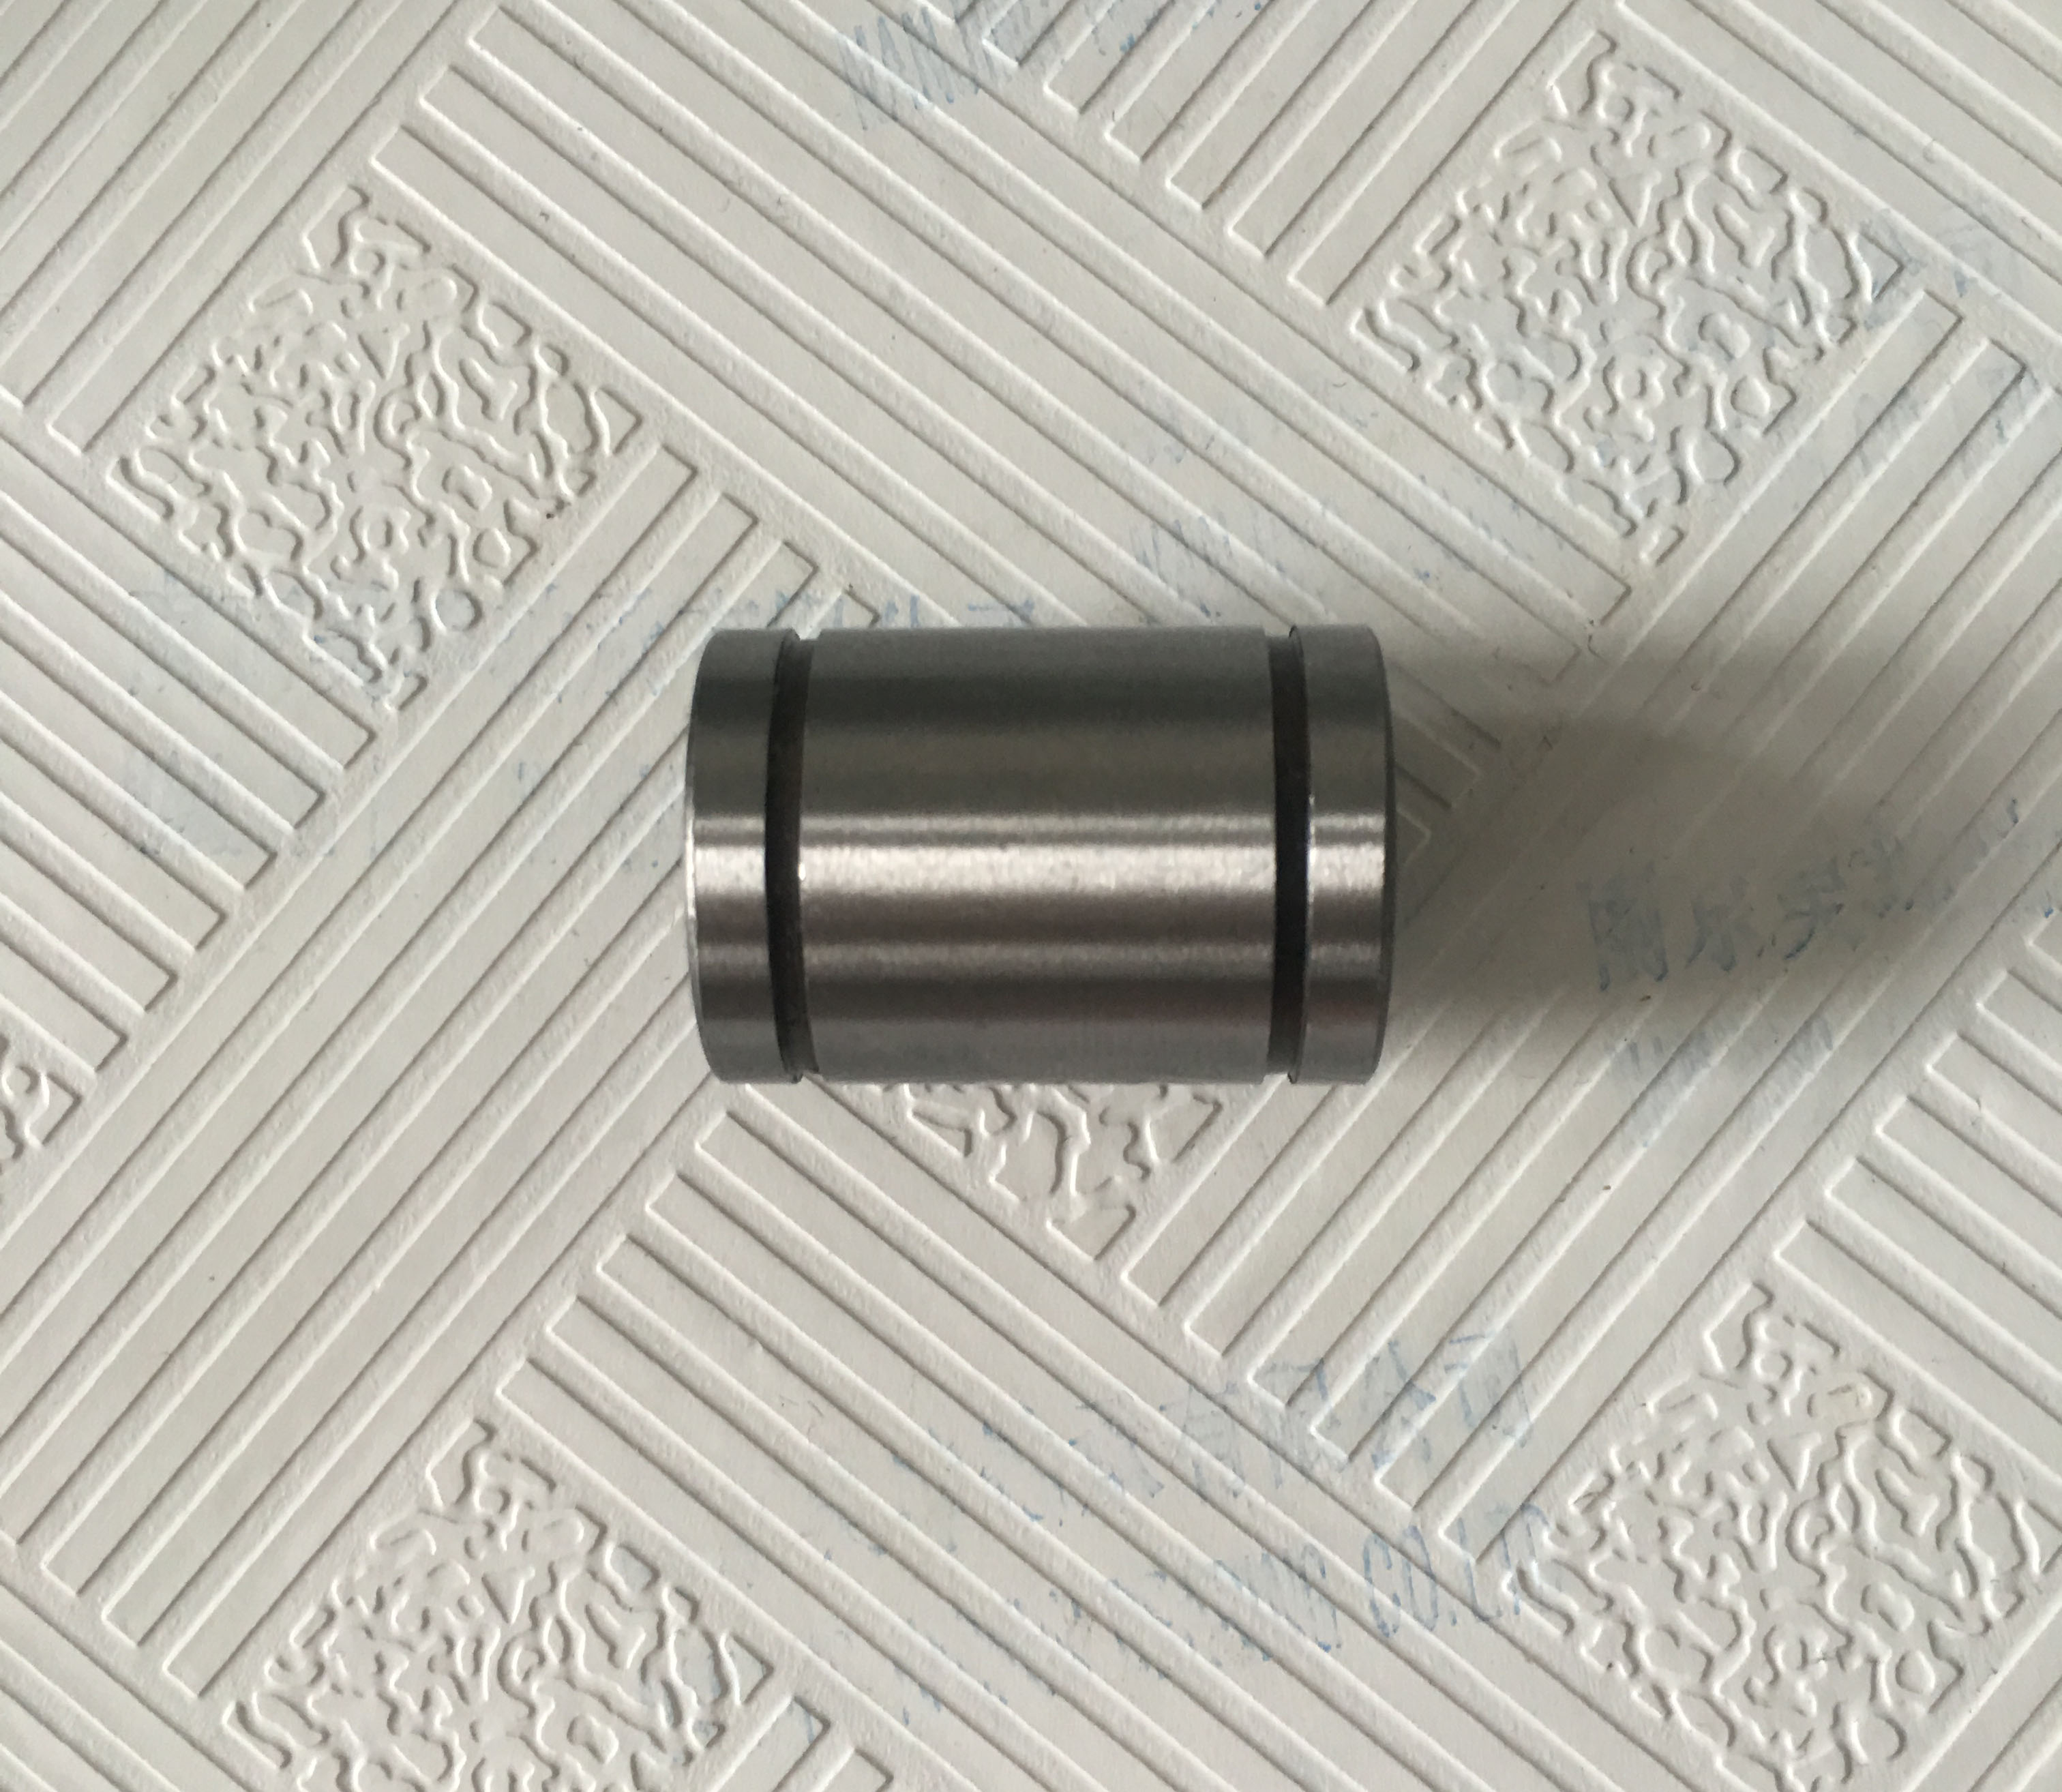 ALL NEW LM4UU LM4 linear ball bearing 4mm linear bush for 3D printer parts 4mm linear rod